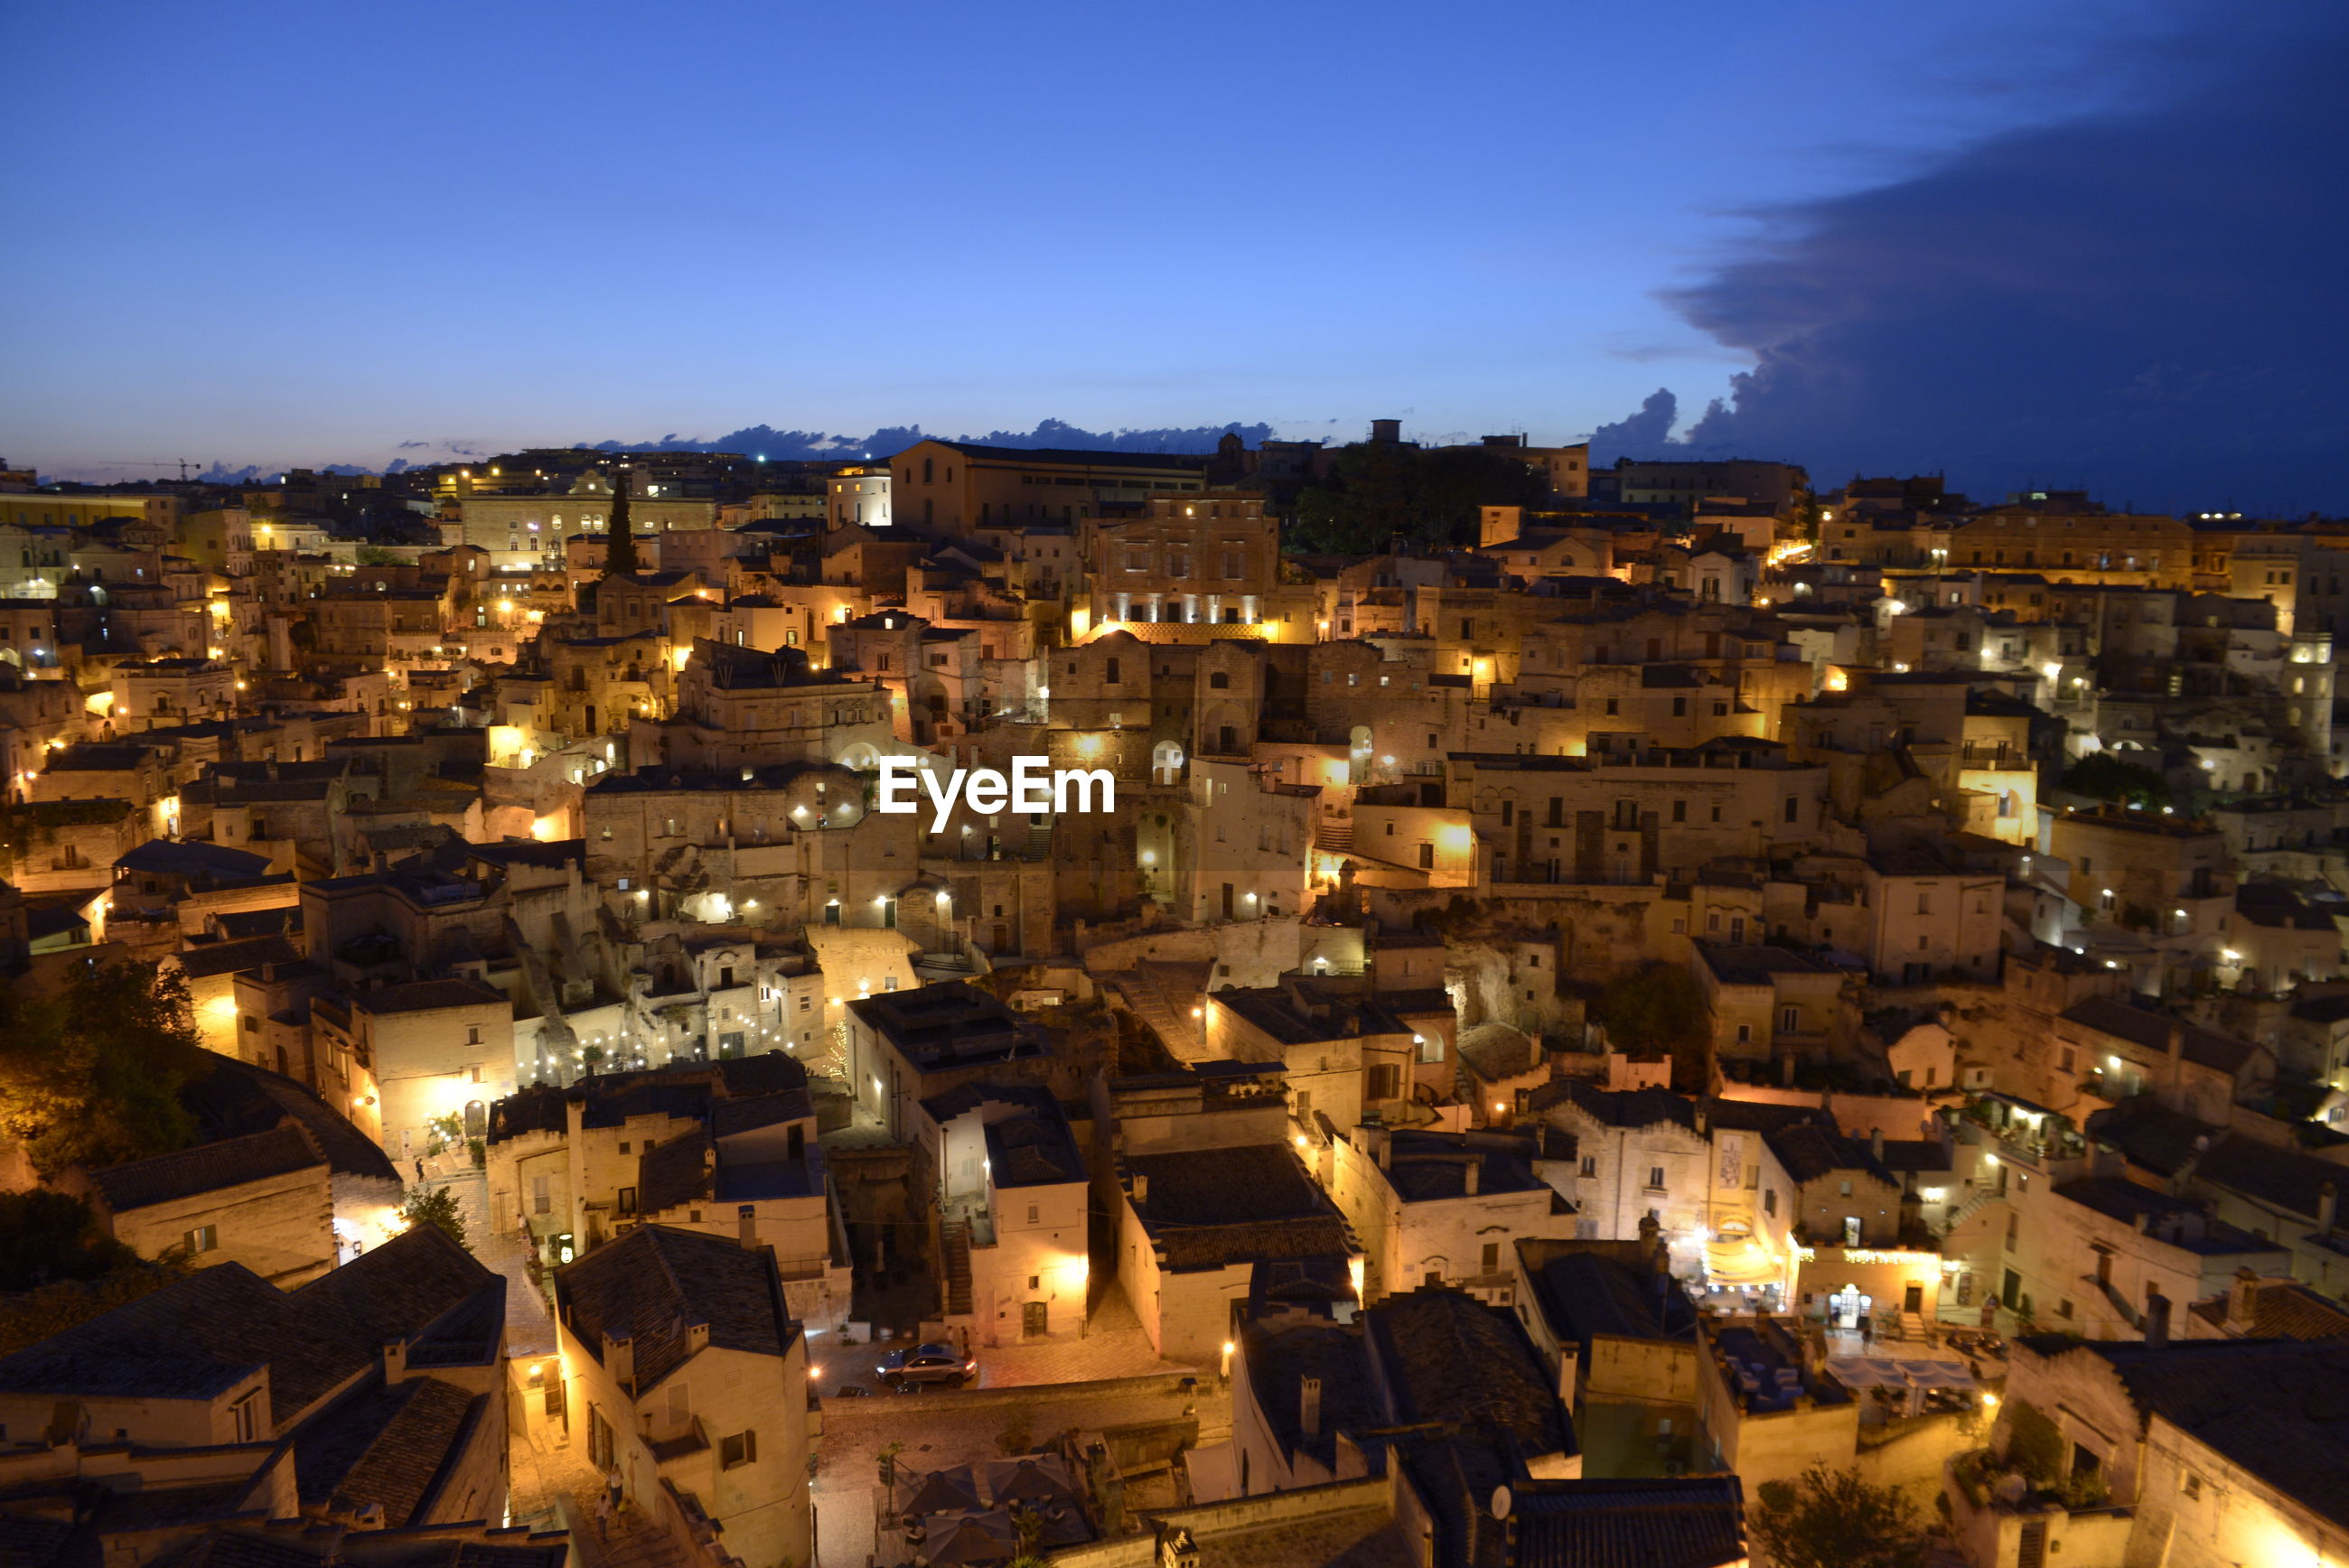 HIGH ANGLE VIEW OF ILLUMINATED TOWN AGAINST SKY